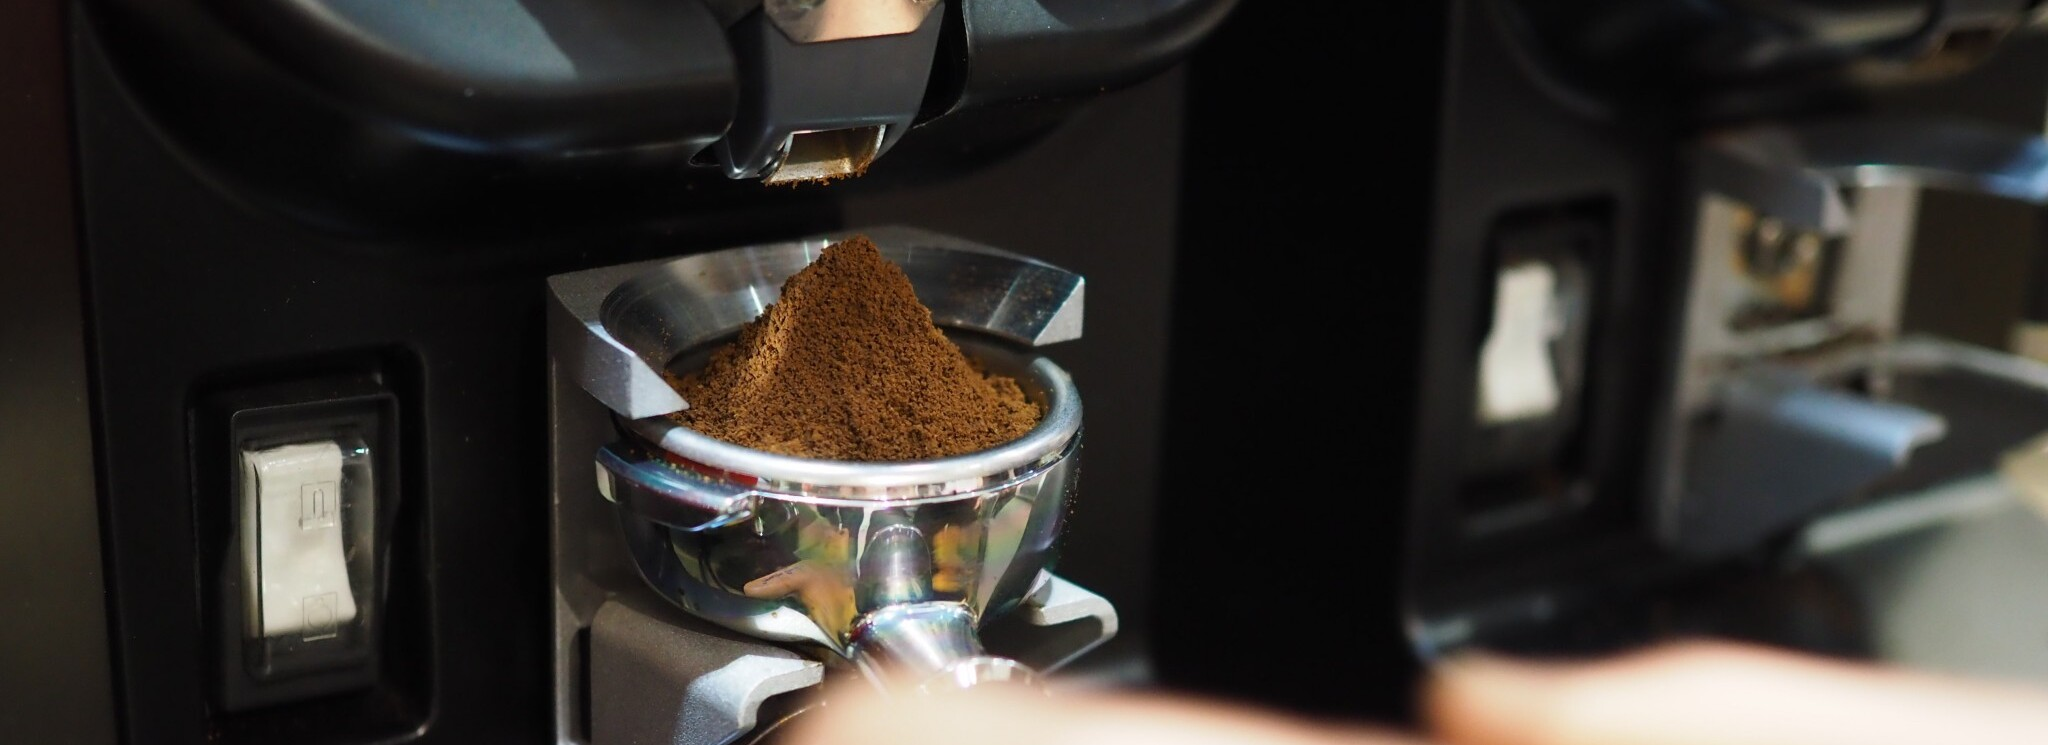 Fresh grinded coffee in the portafilter